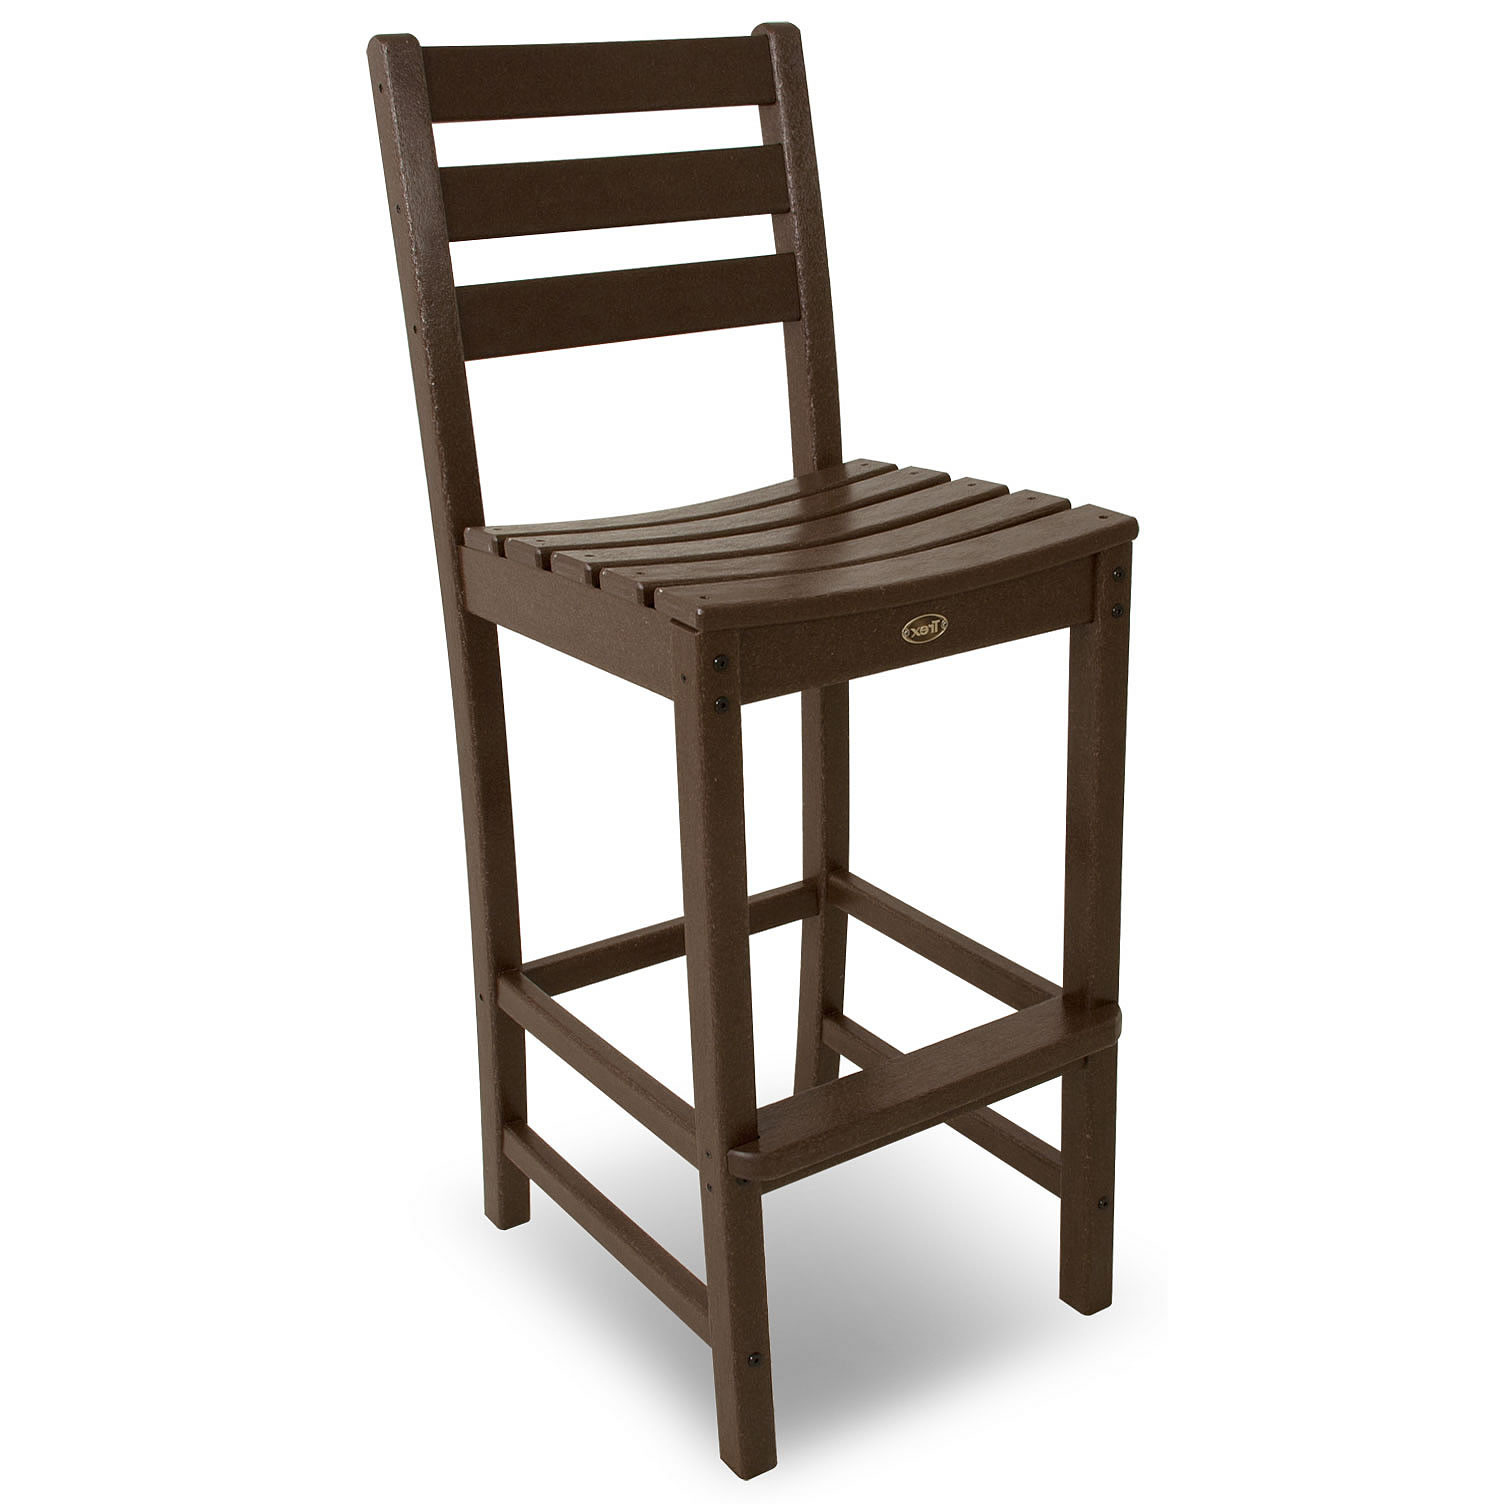 Trex Outdoor Furniture Monterey Bay Bar Height Side Chair Monterey Bay T